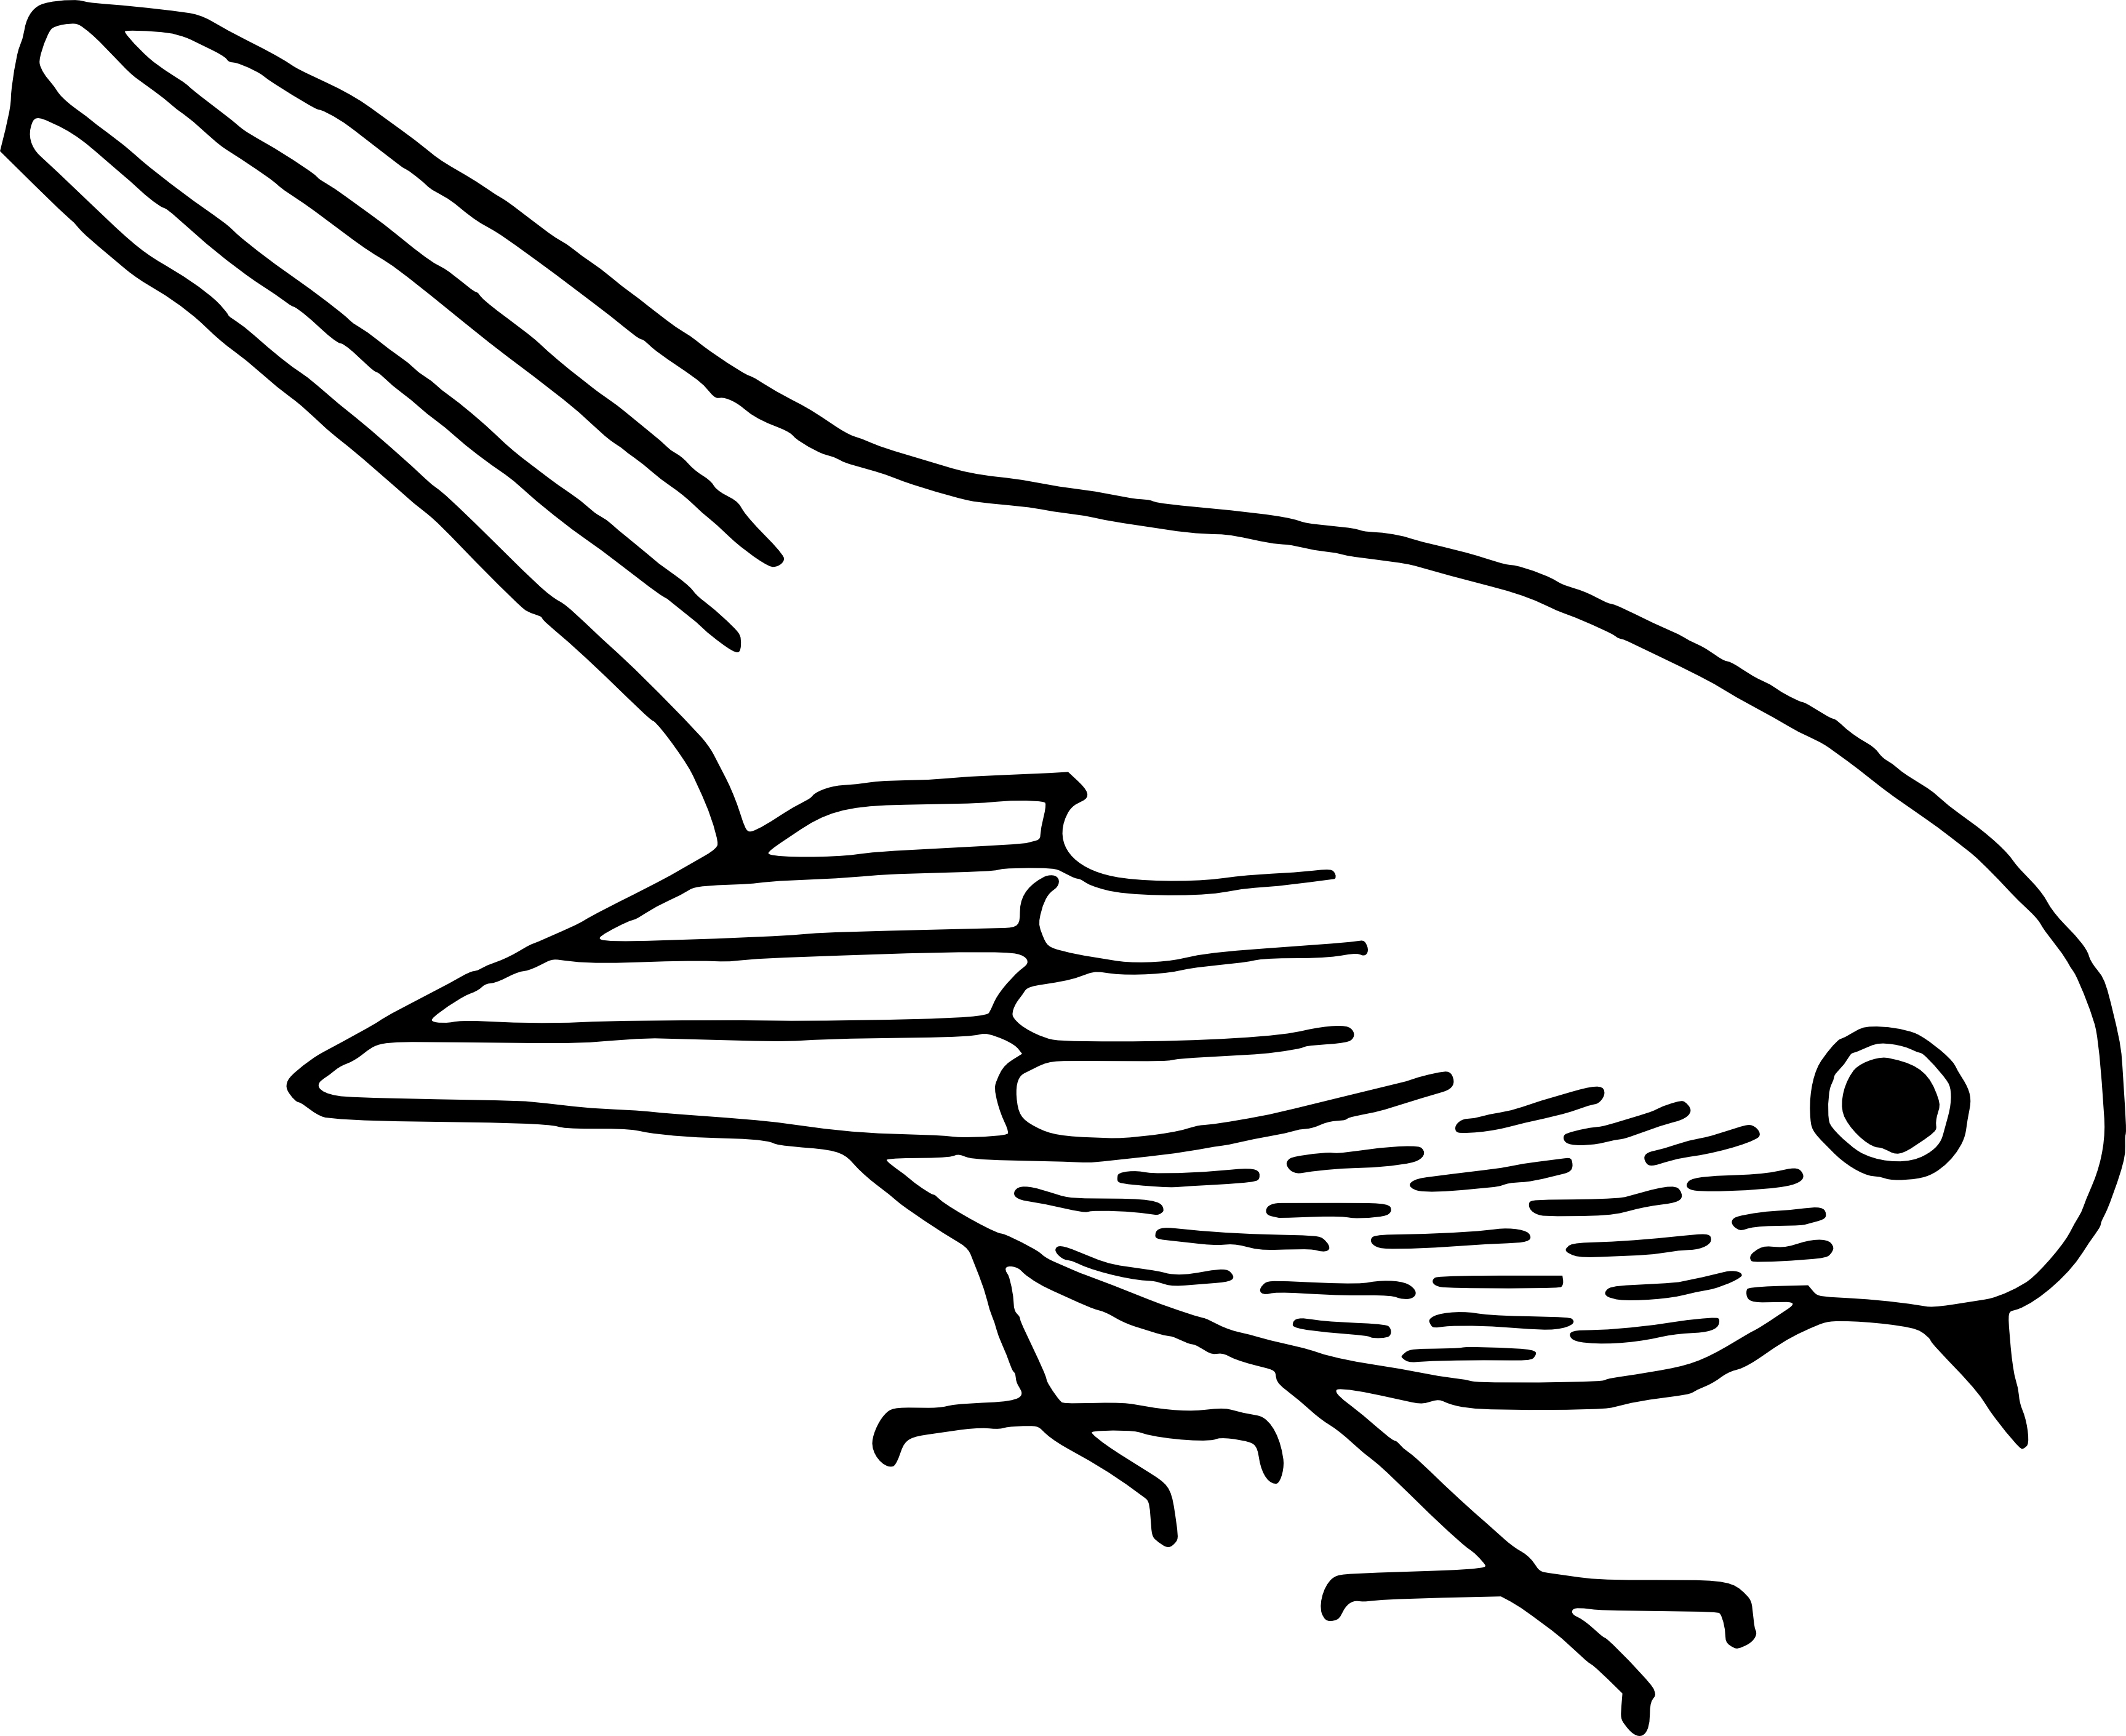 Bird clip art line drawing. At getdrawings com free